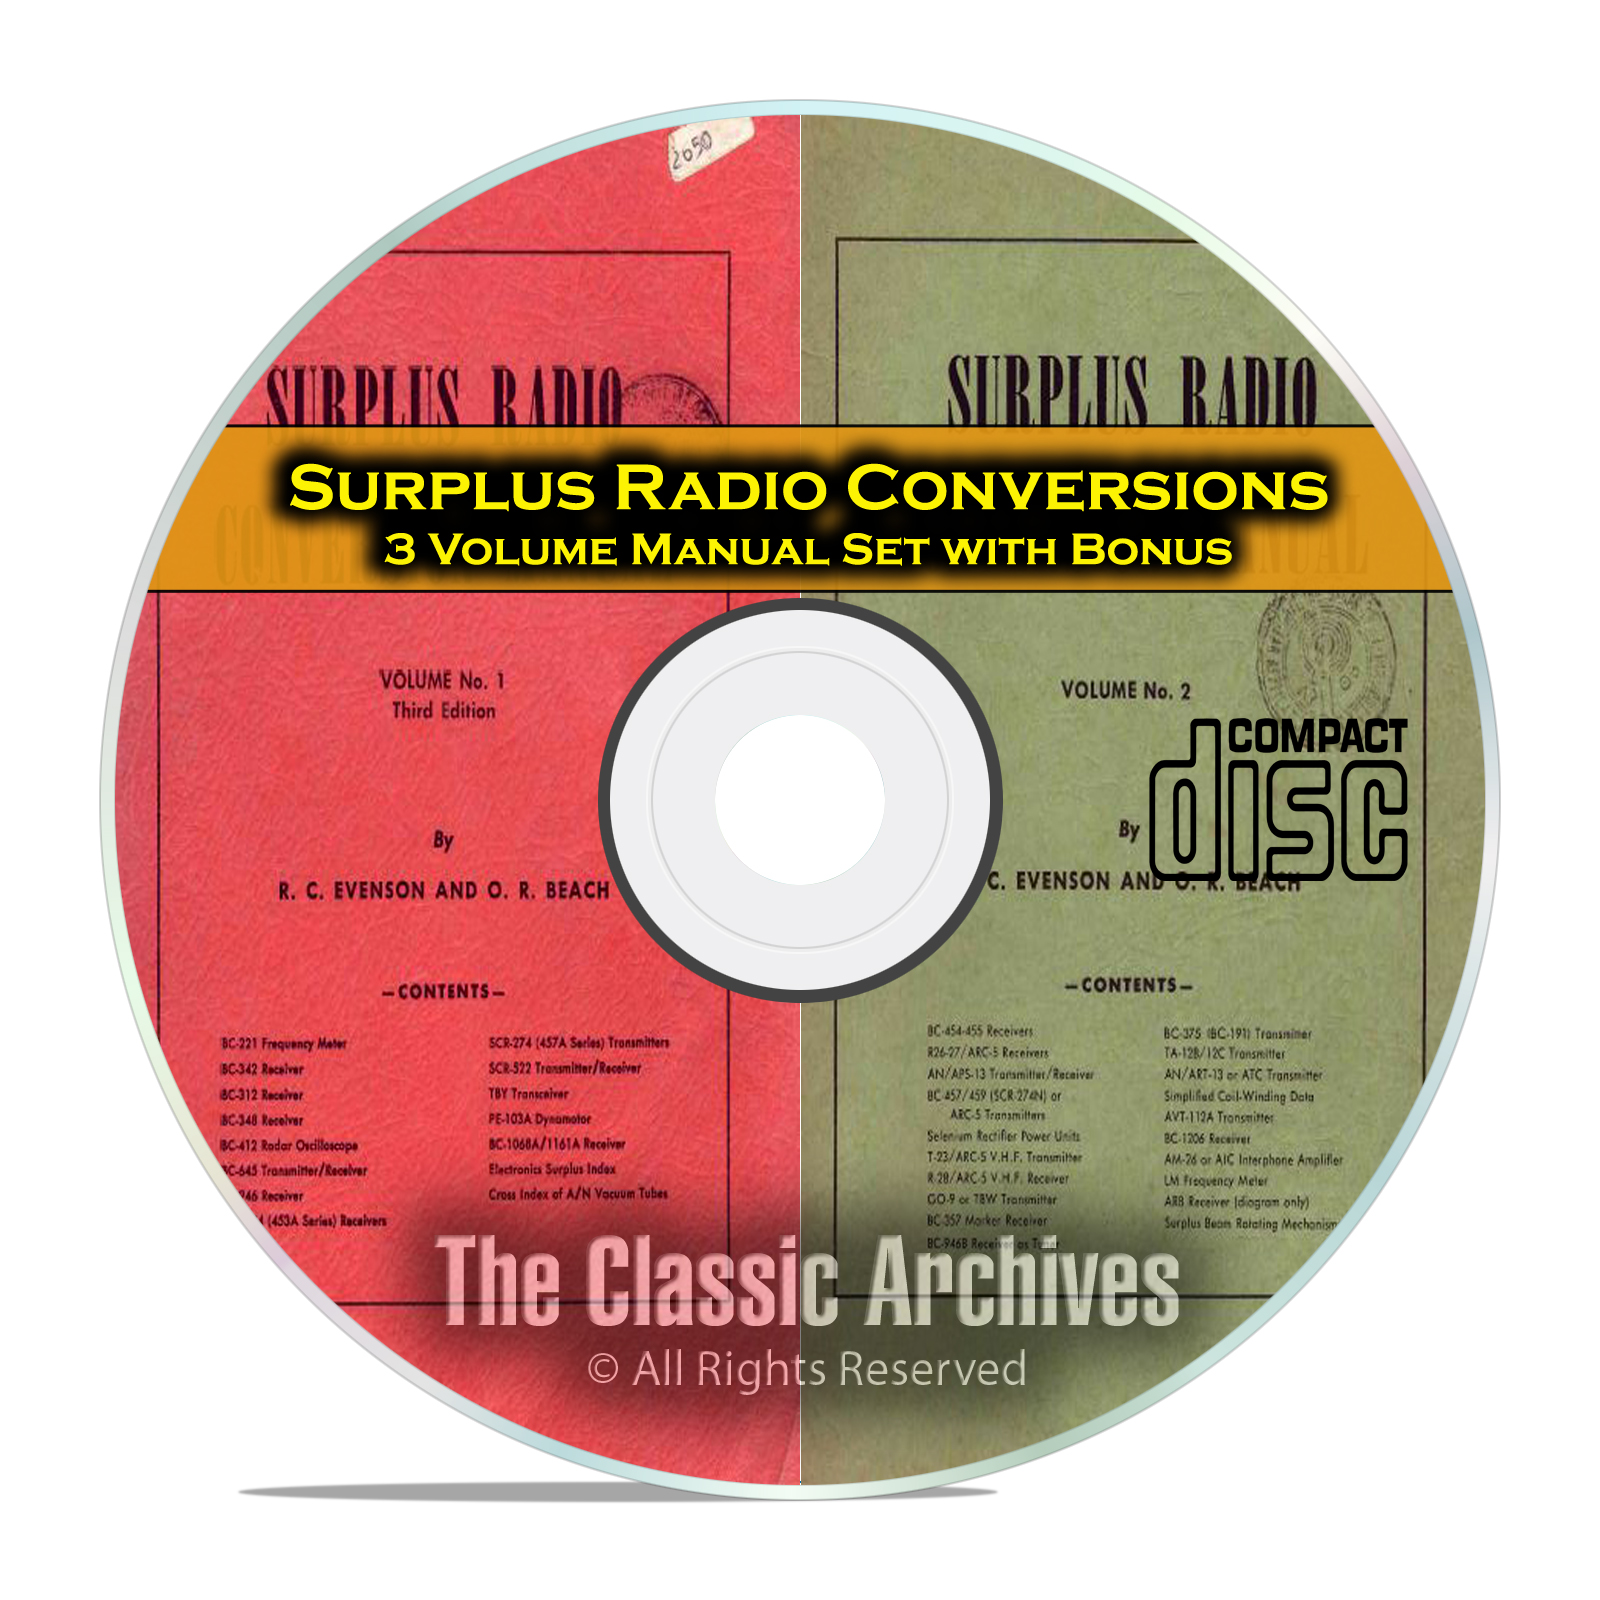 Surplus Radio Conversion Manuals, Old Time Radio Repair and Service CD